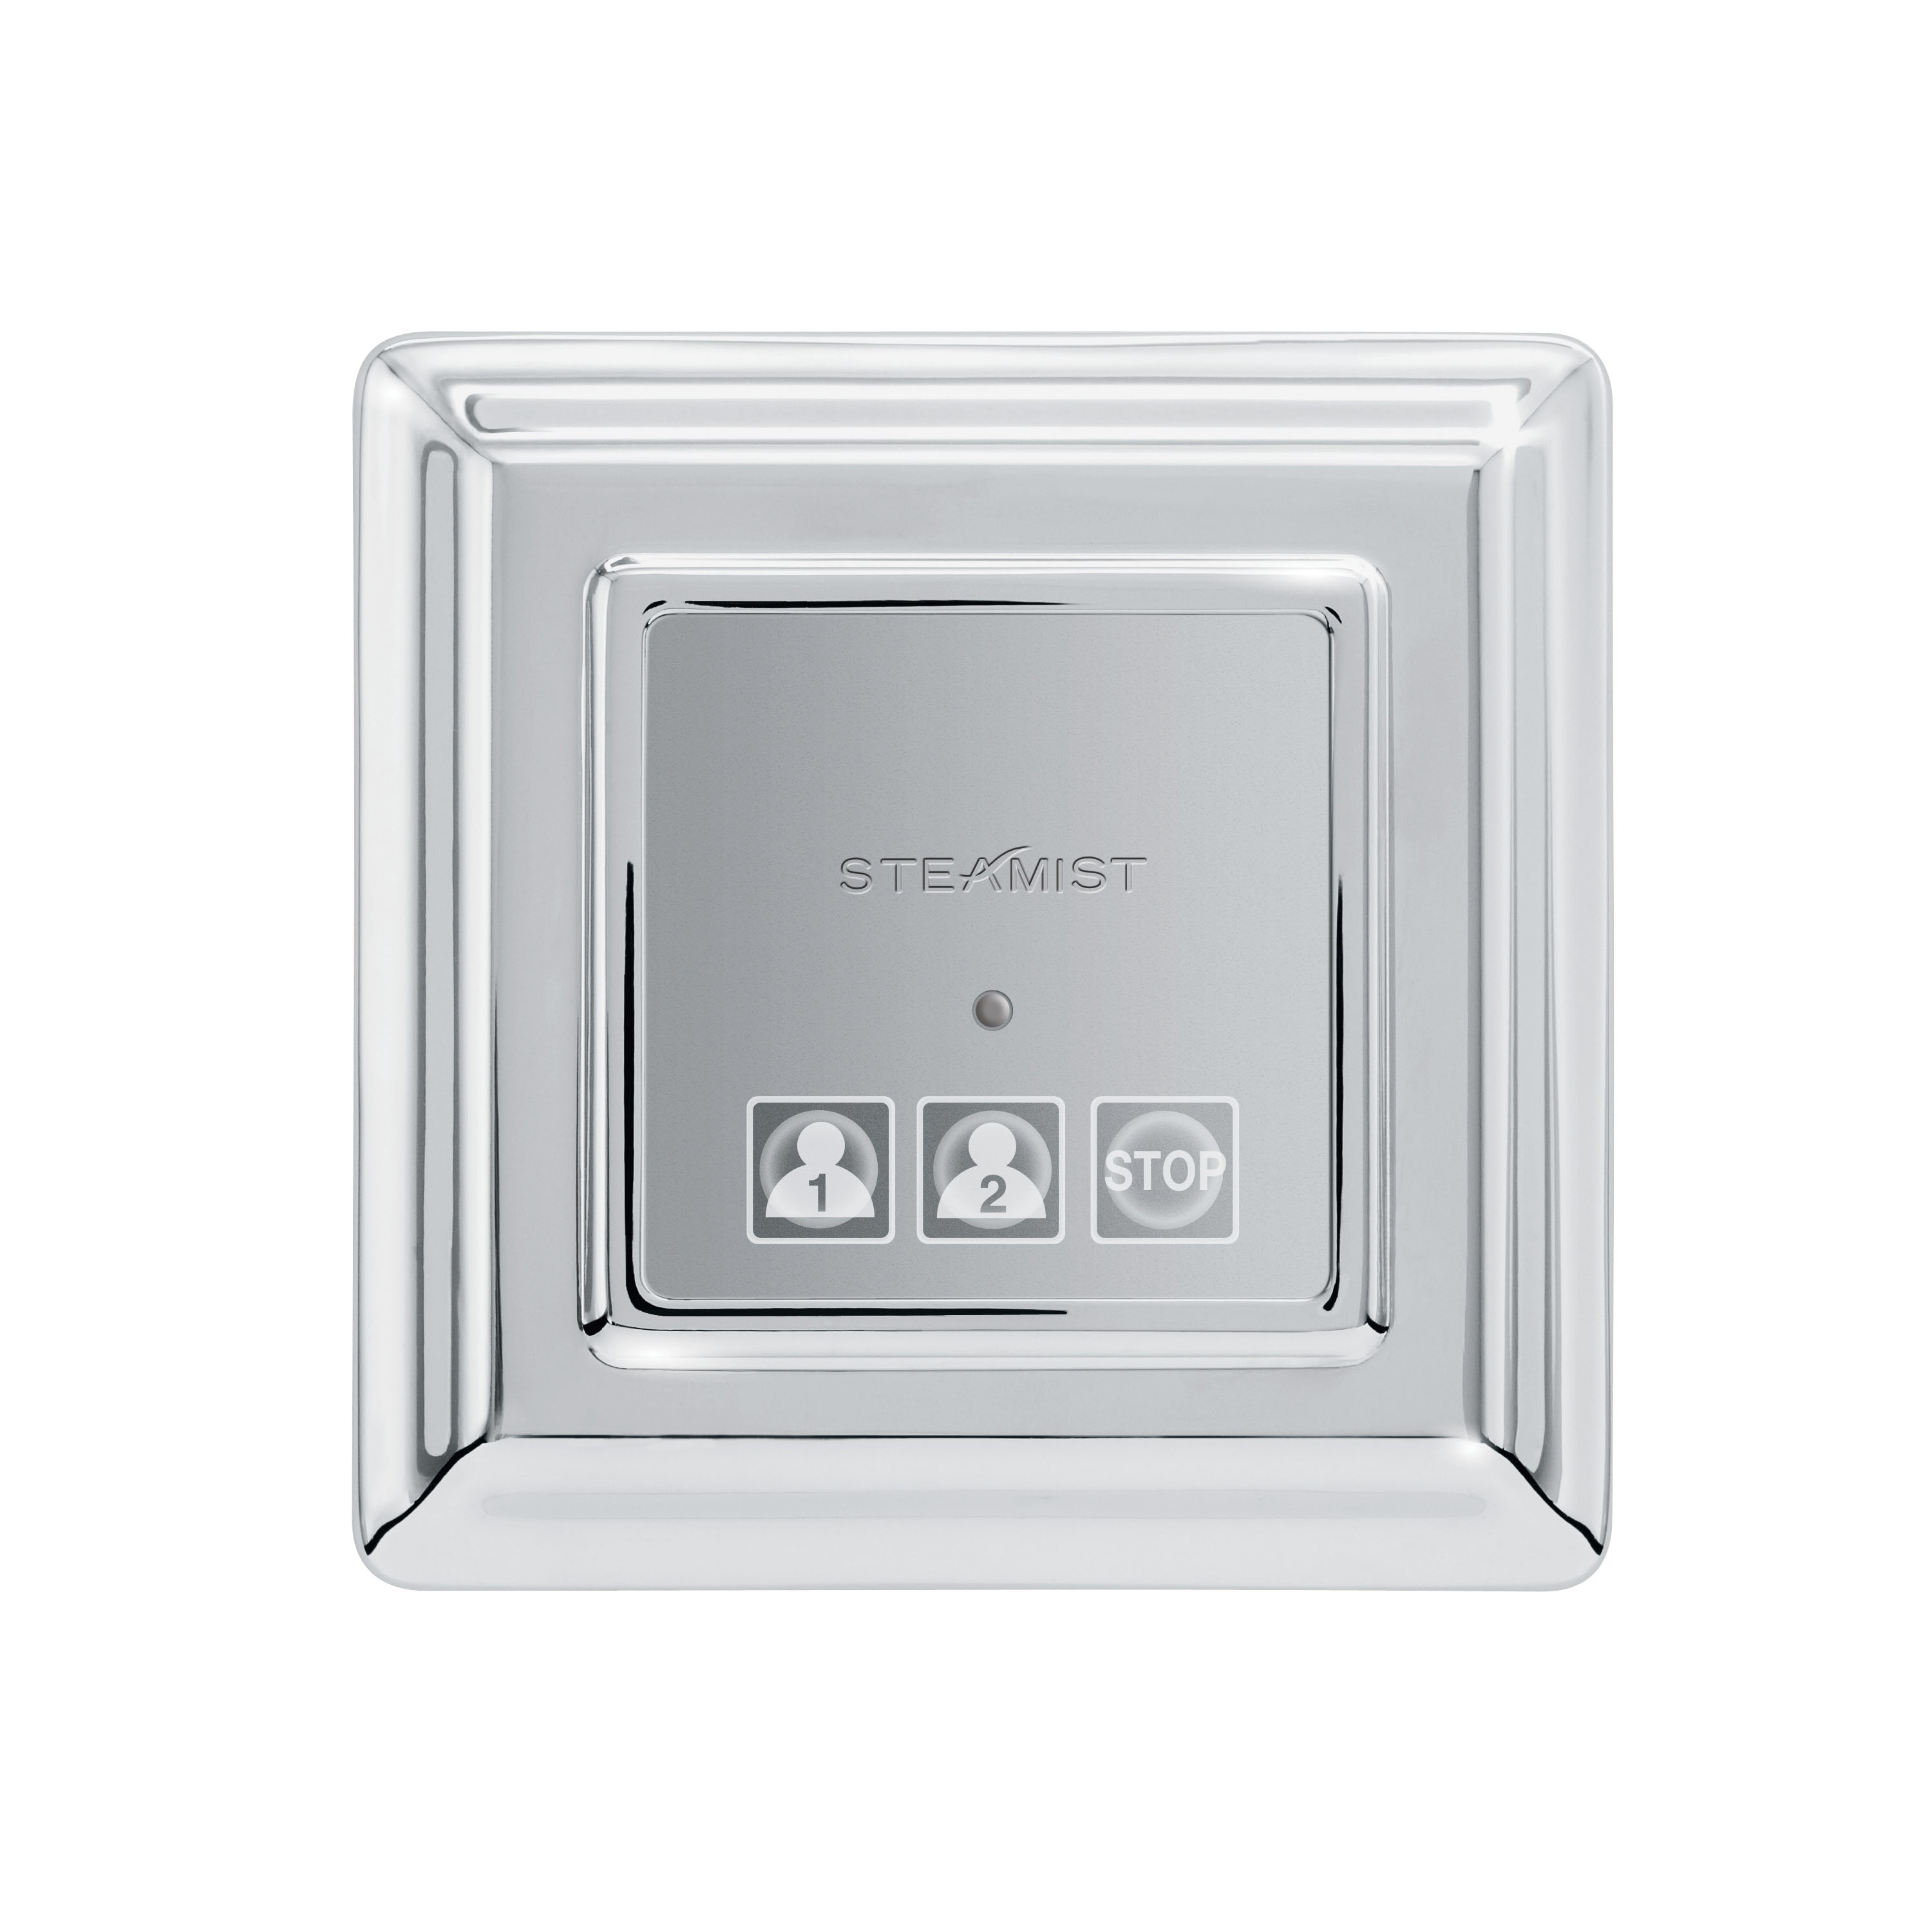 Steamist® 220T-PC TSX-220T Traditional Steambath Control, Total Sense™, LED Display, Polished Chrome, For Use With: Model TSC-450 Steambath Control, Domestic